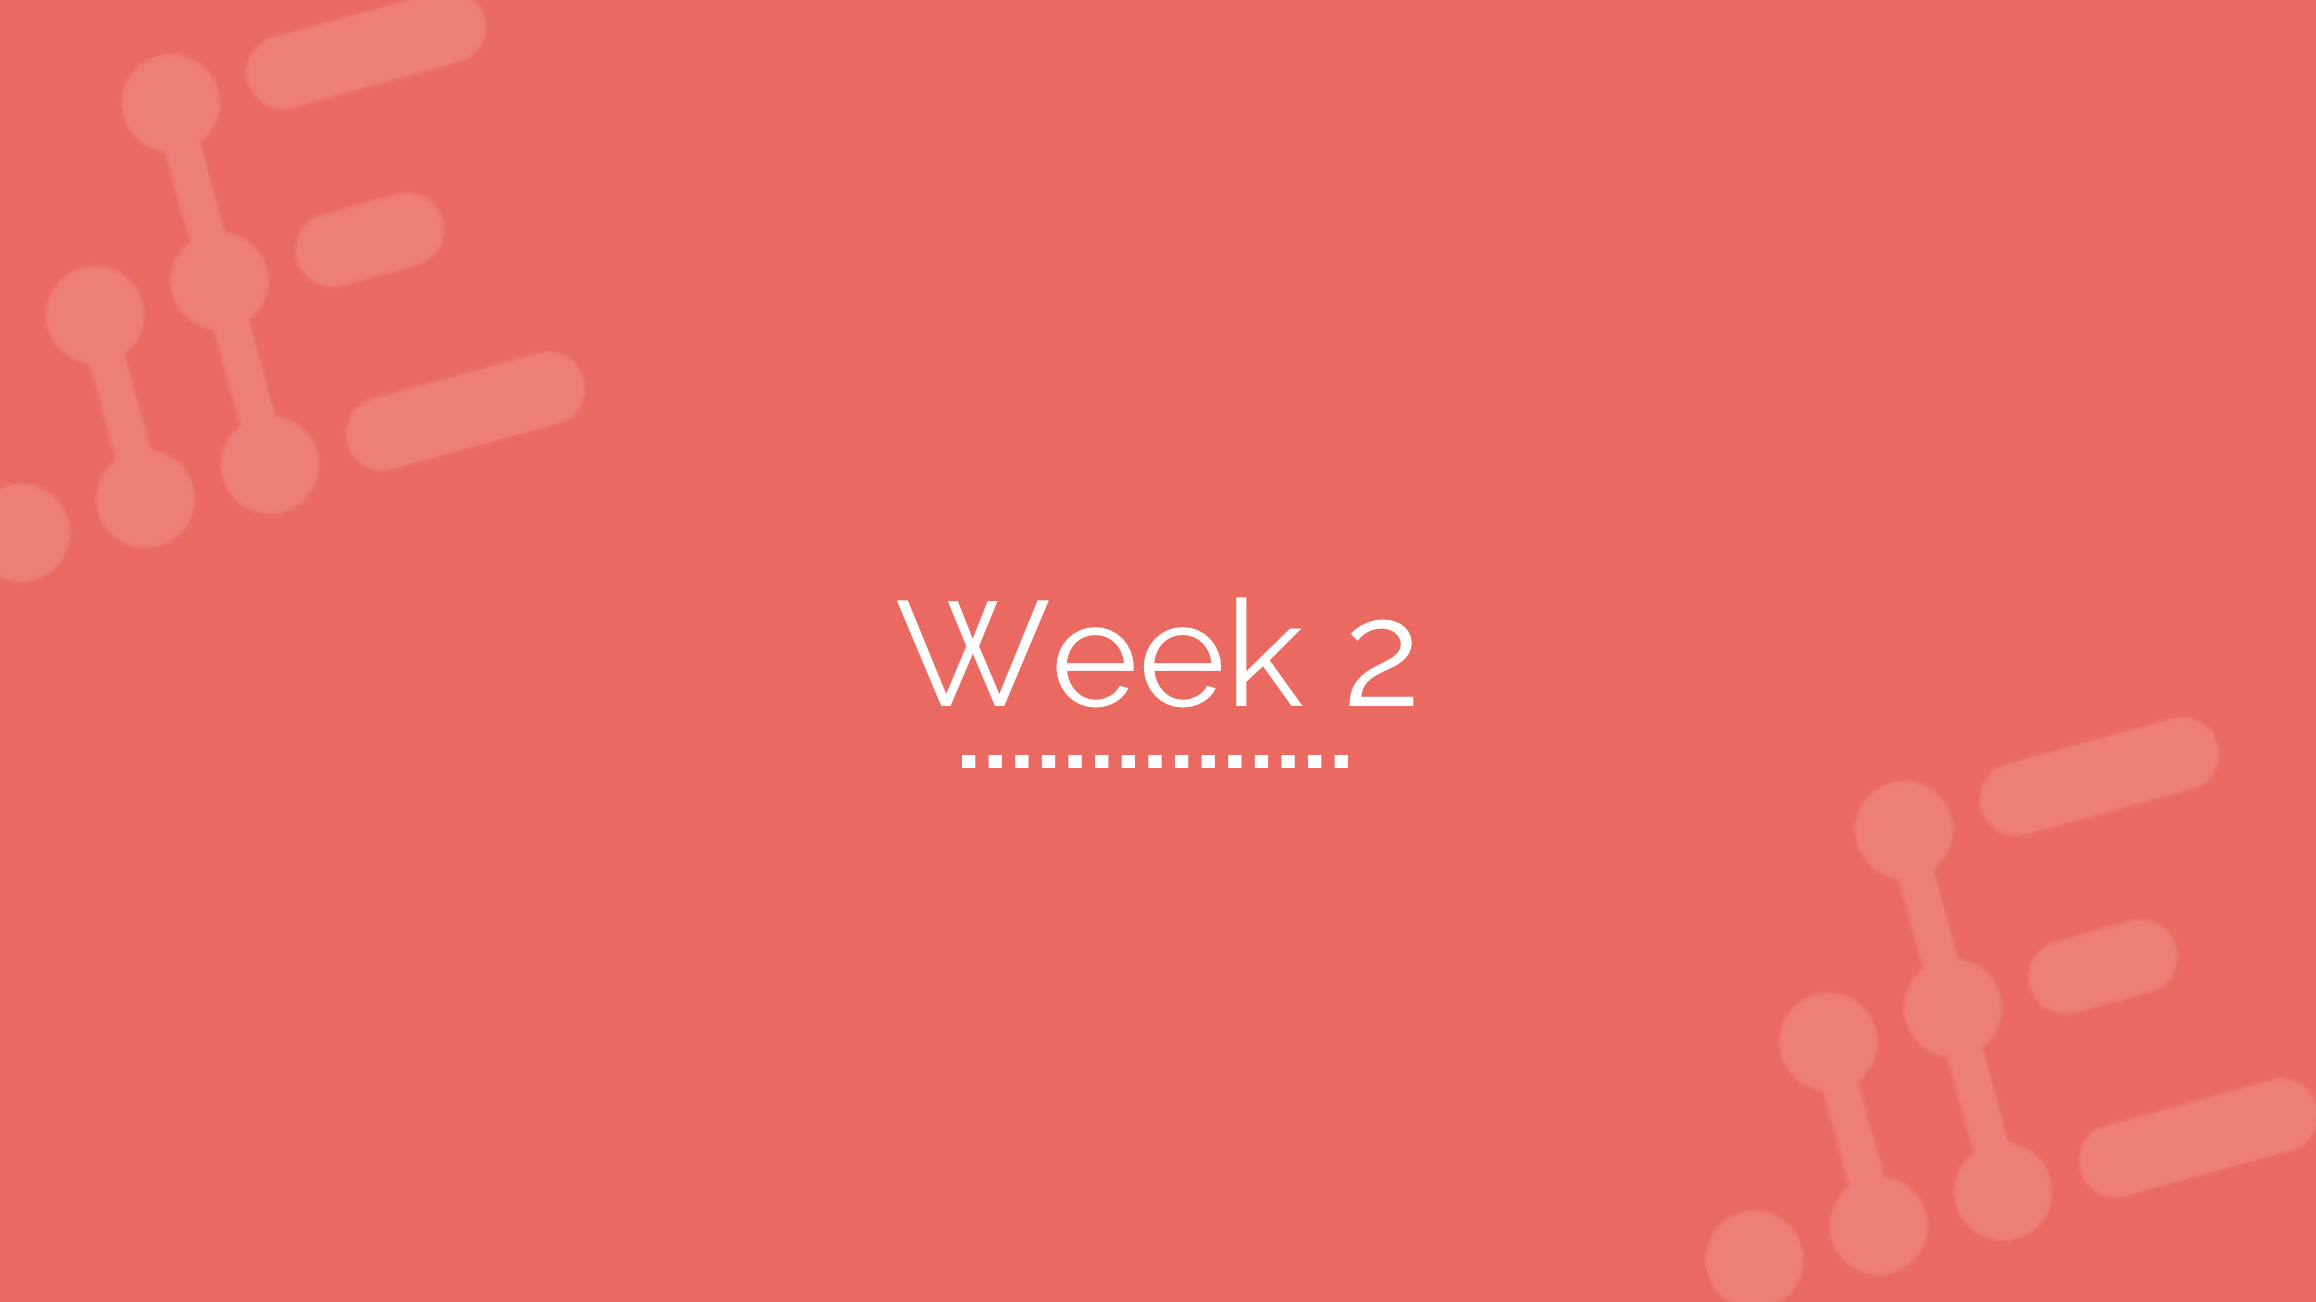 Week 2 - Sales, Customer Journey, & Integration